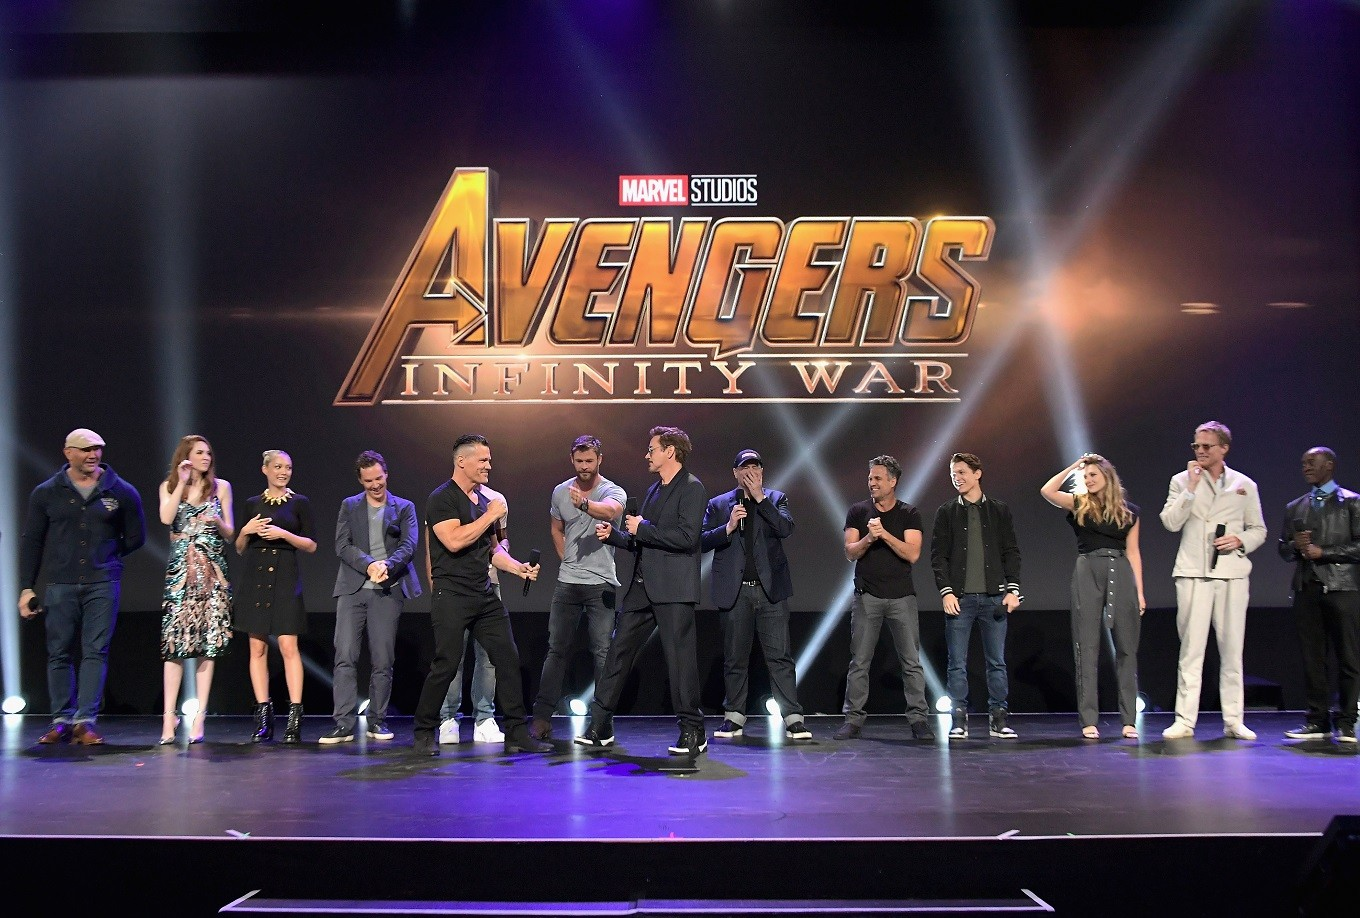 Marvel stuns fans with giant Avengers gathering